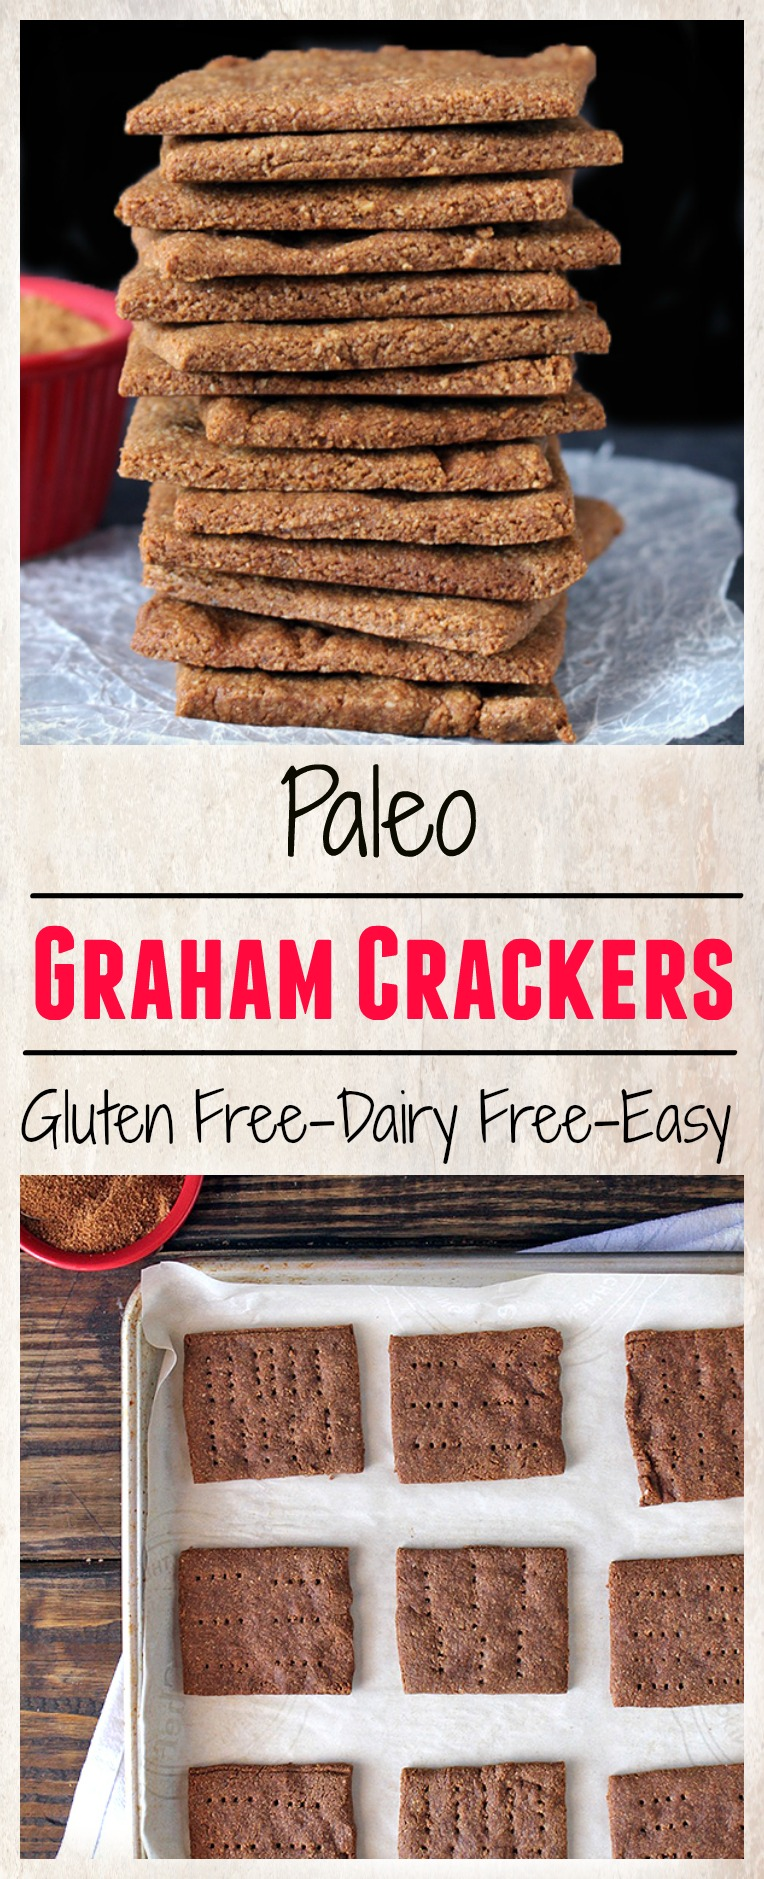 Paleo Graham Crackers